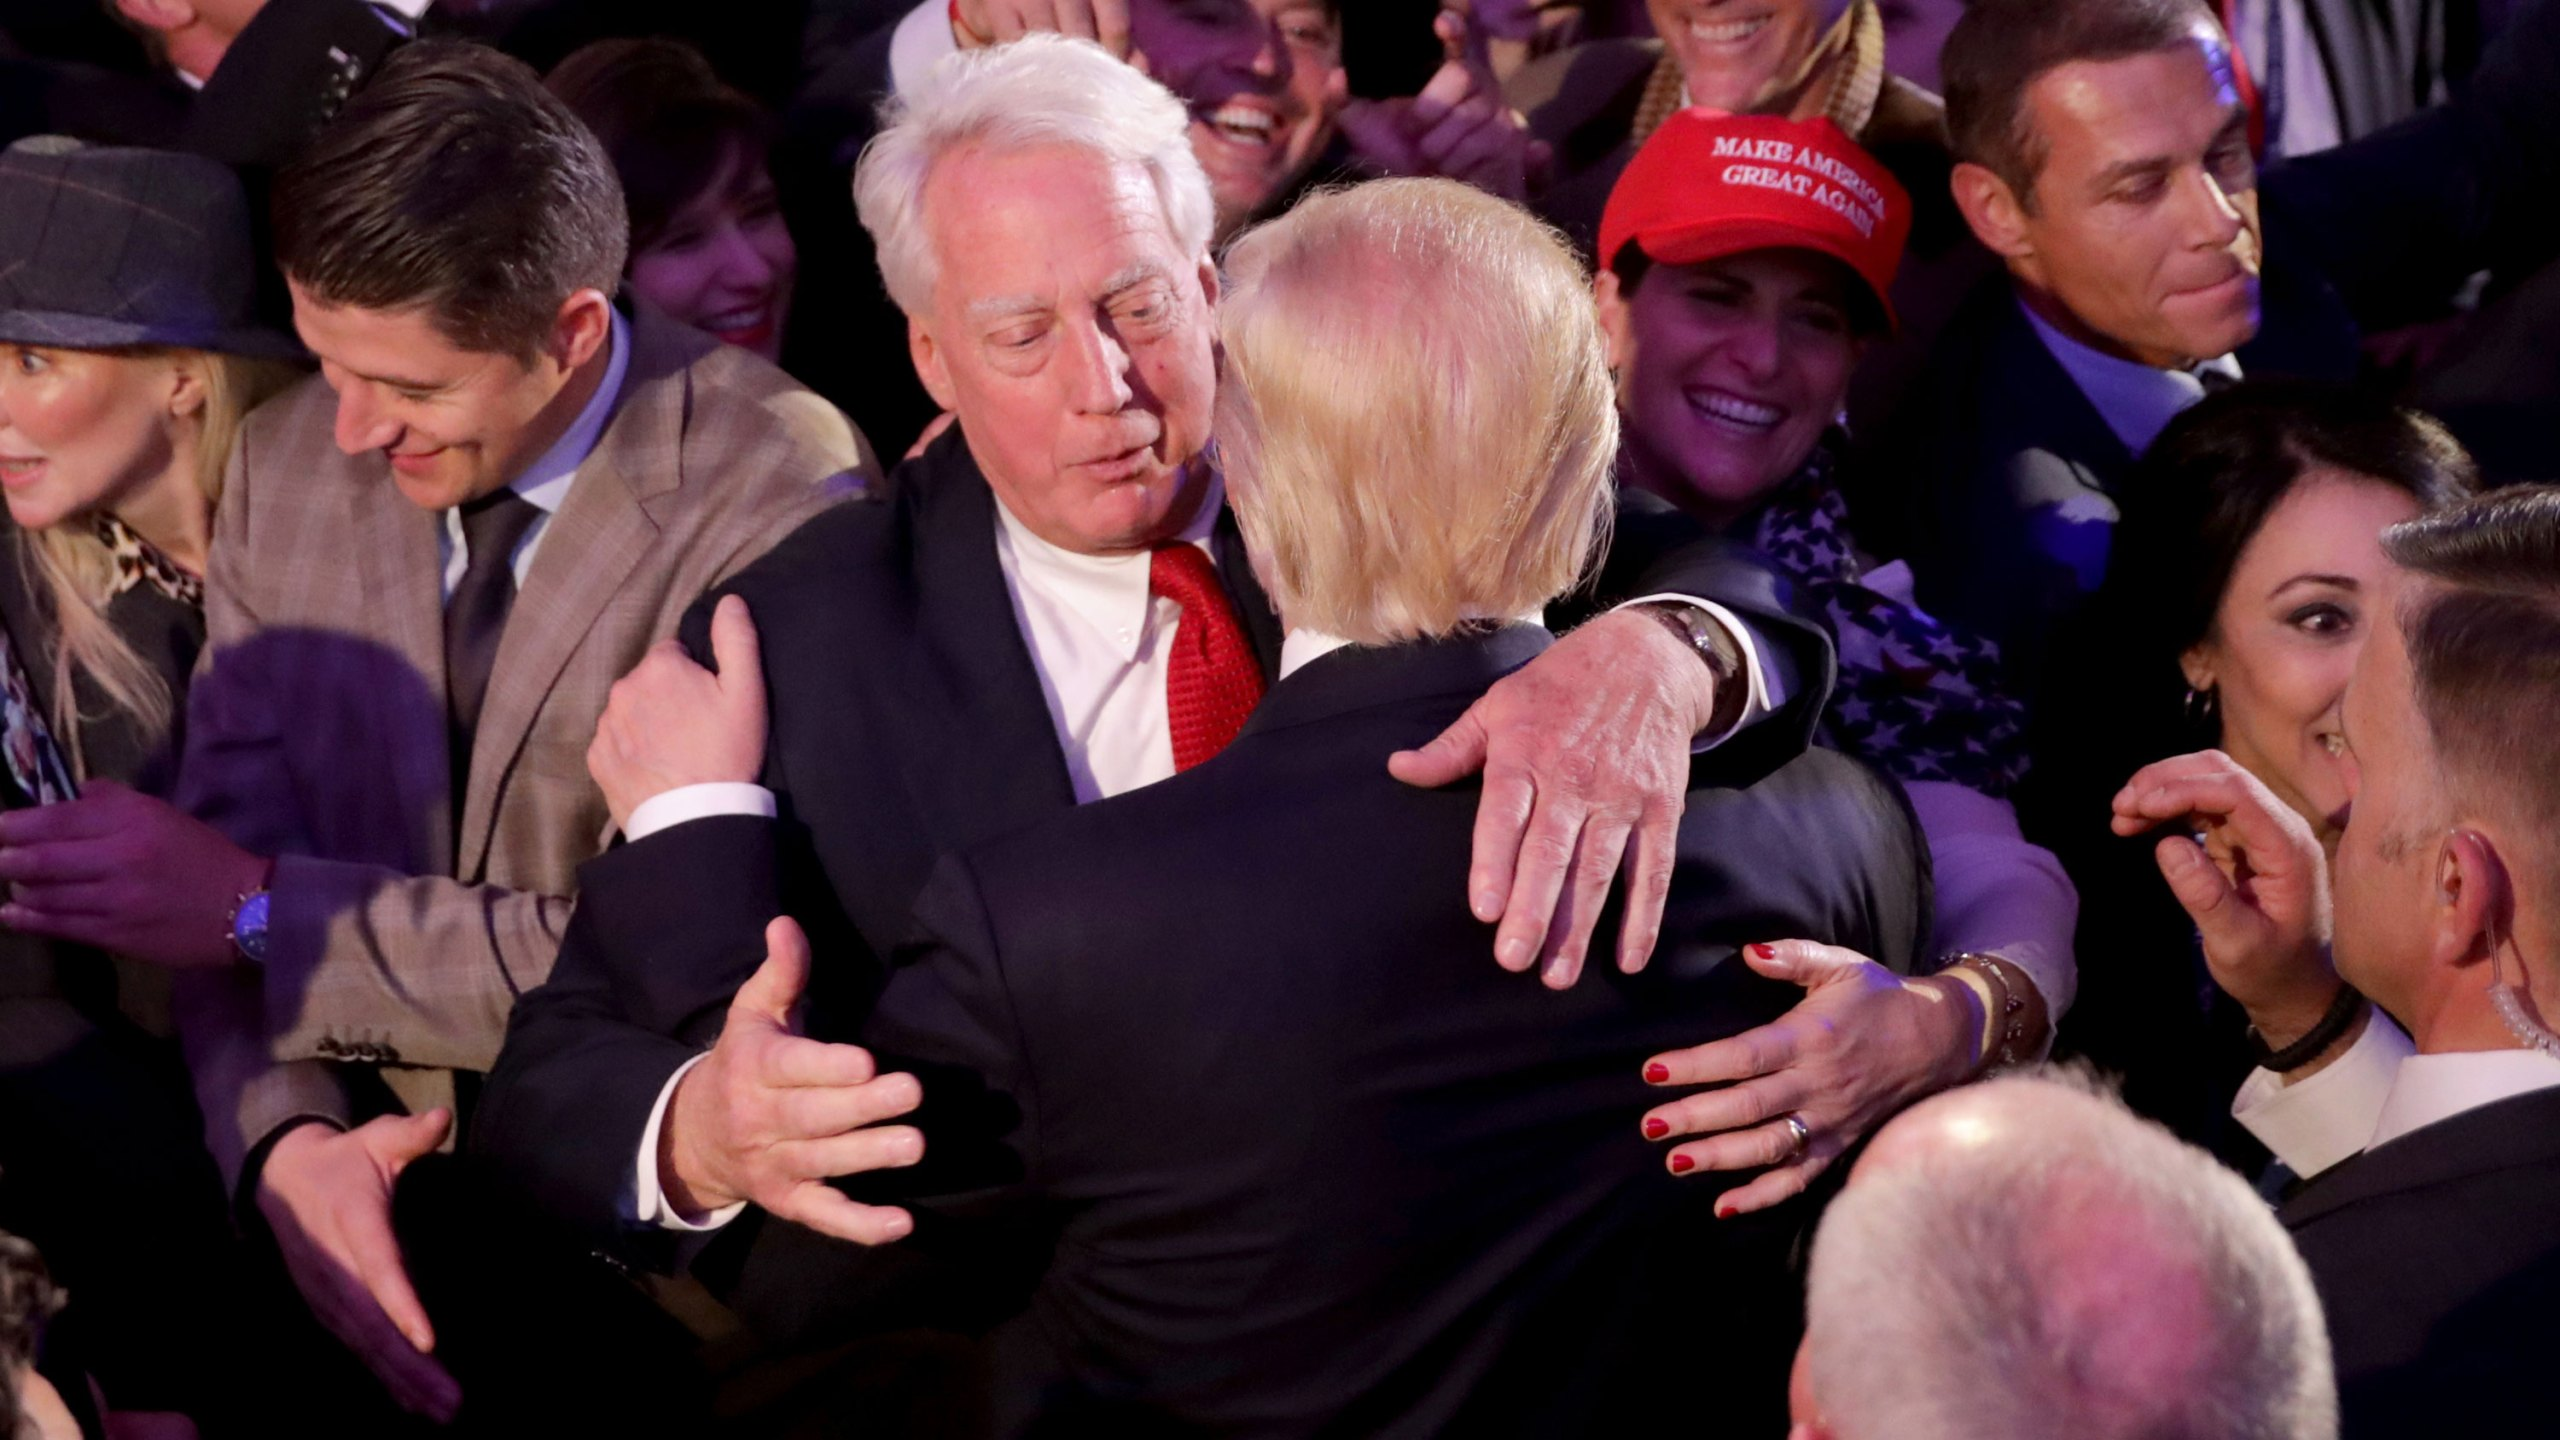 Republican president-elect Donald Trump hugs his brother Robert Trump after delivering his acceptance speech at the New York Hilton Midtown in the early morning hours of November 9, 2016 in New York City. (Chip Somodevilla/Getty Images)